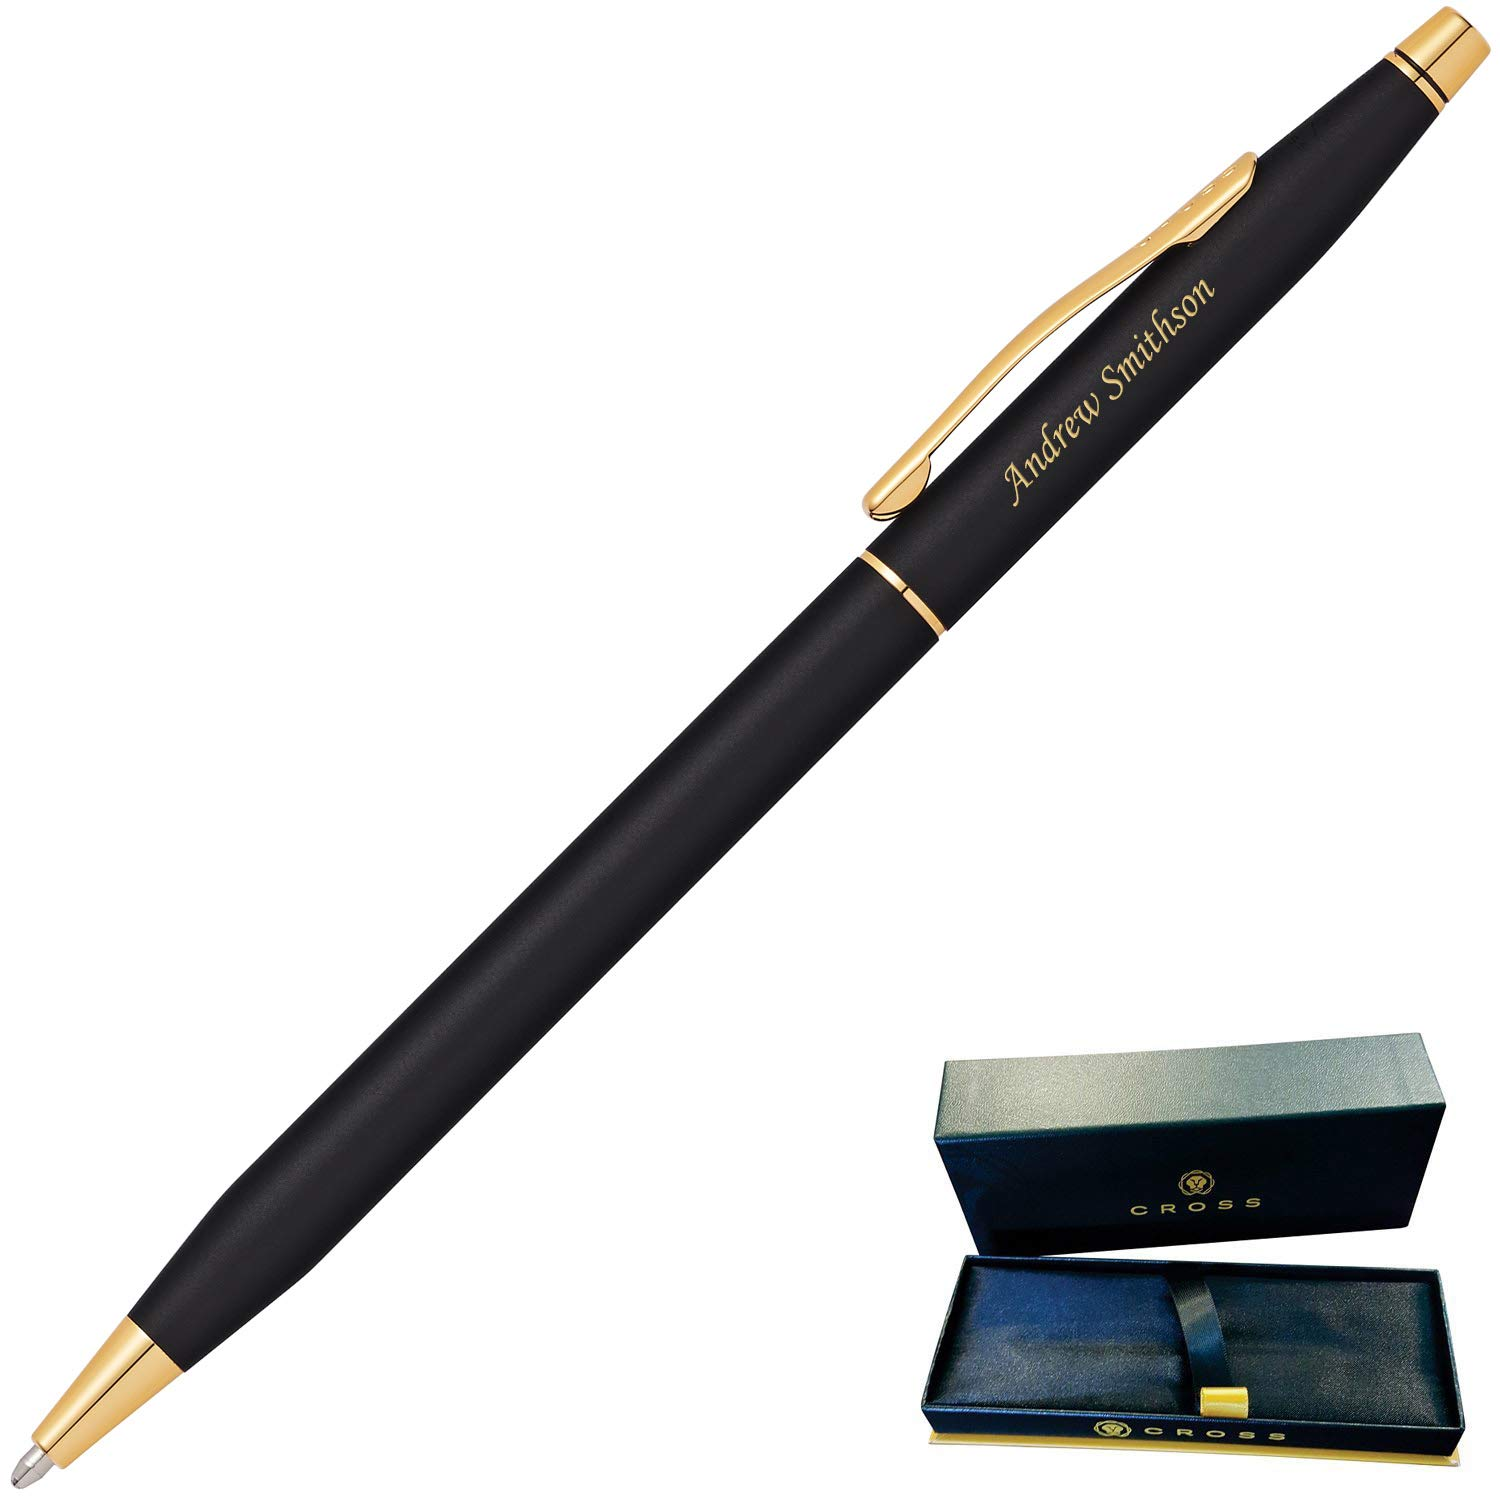 Dayspring Pens | Engraved/Personalized Cross Classic Century Black Ballpoint Pen with Gold Trim 2502. Custom Engraved Fast!